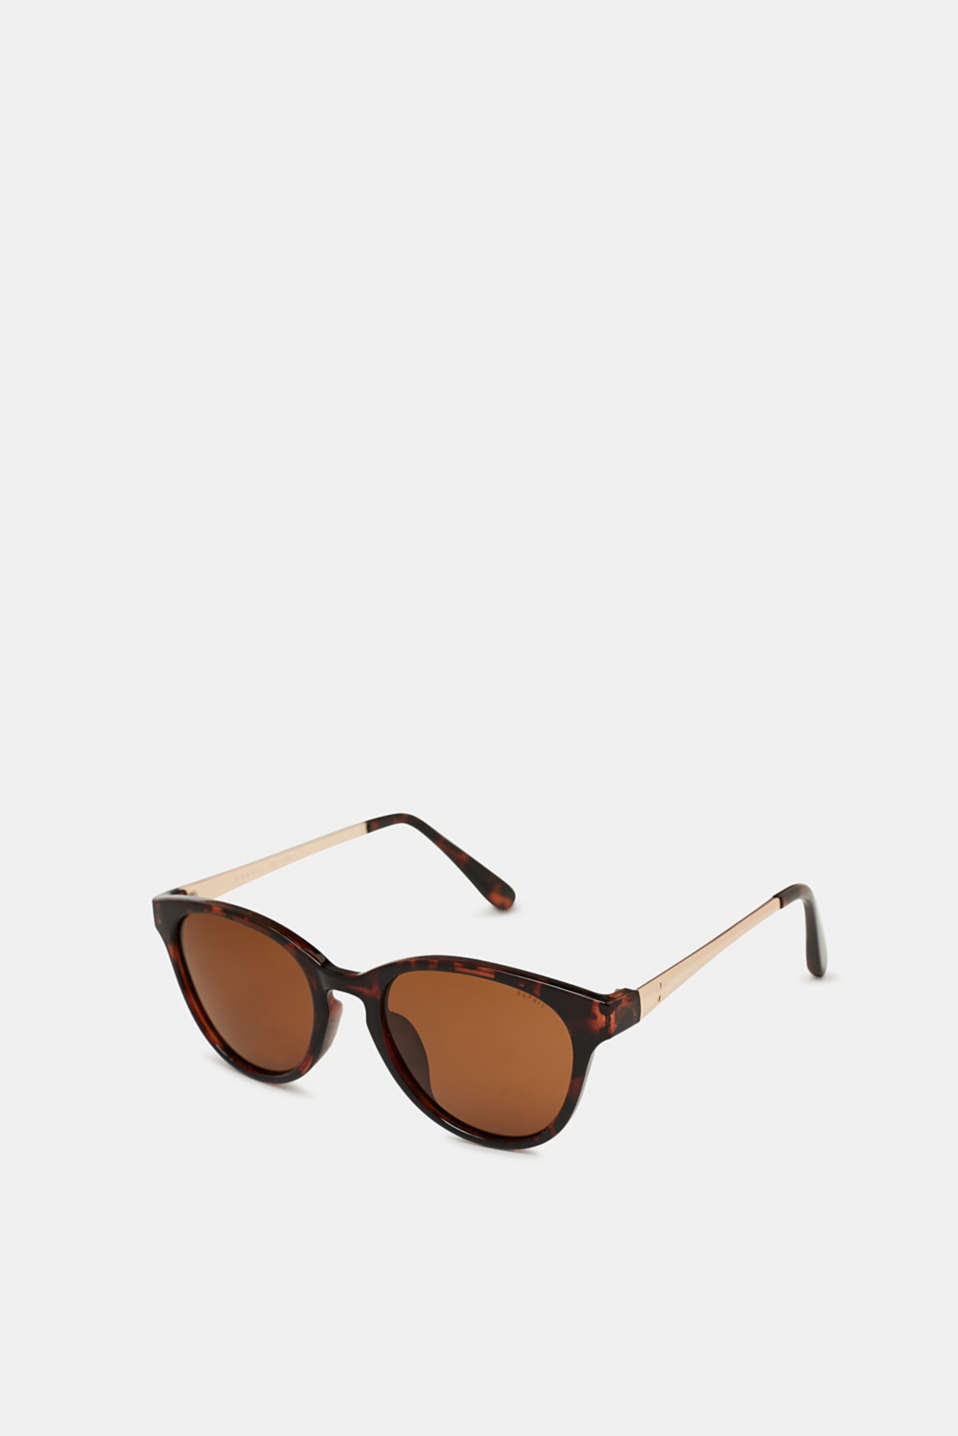 Polished metal temples and a modern design make these sunglasses a stylish accessory.